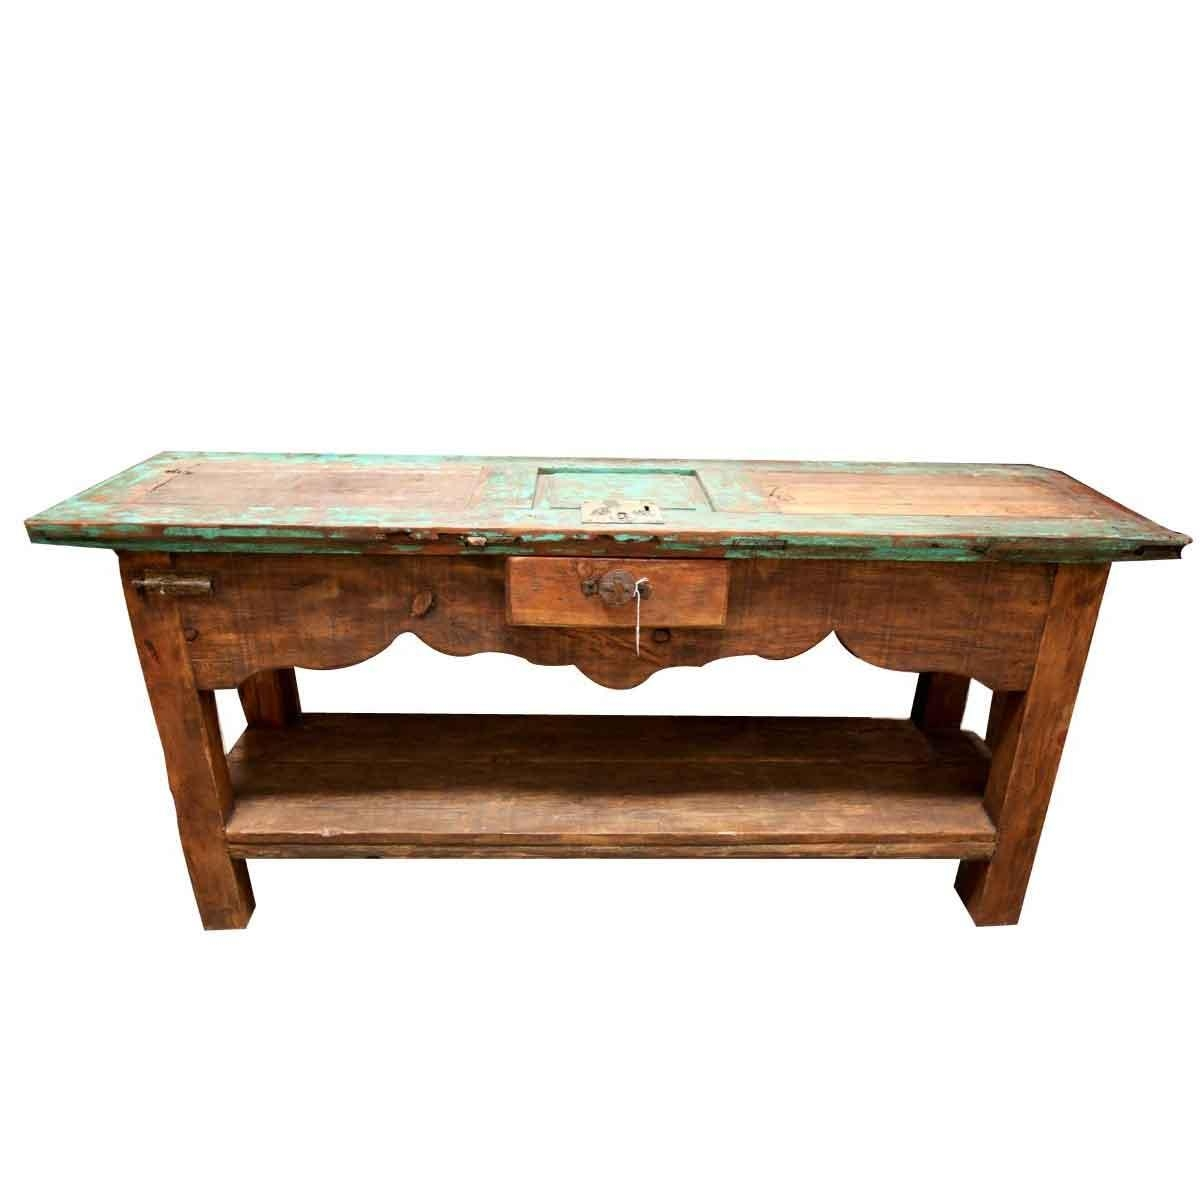 Sofa Tables | Order Rustic Sofa Table Online For Barnwood Sofa Tables (Image 18 of 20)